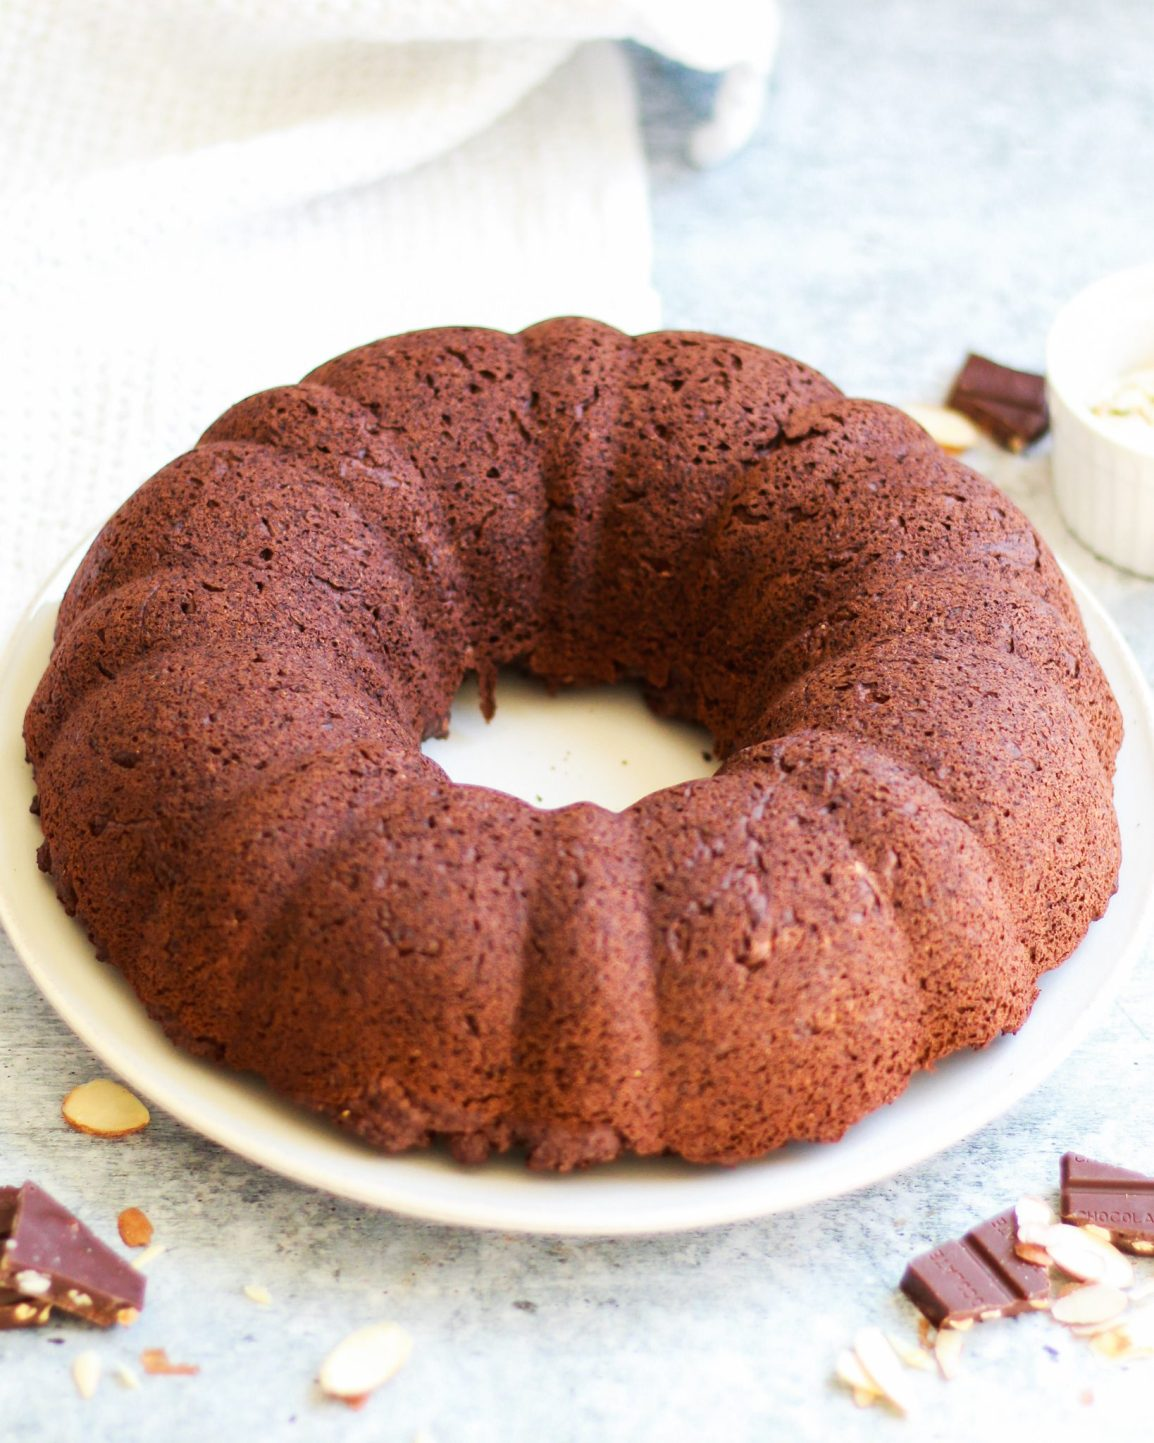 This healthy vegan chocolate bundt cake is a slice of chocolatey decadence on a plate! It's also completely gluten free and refined sugar free, and perfect for any age or occasion!